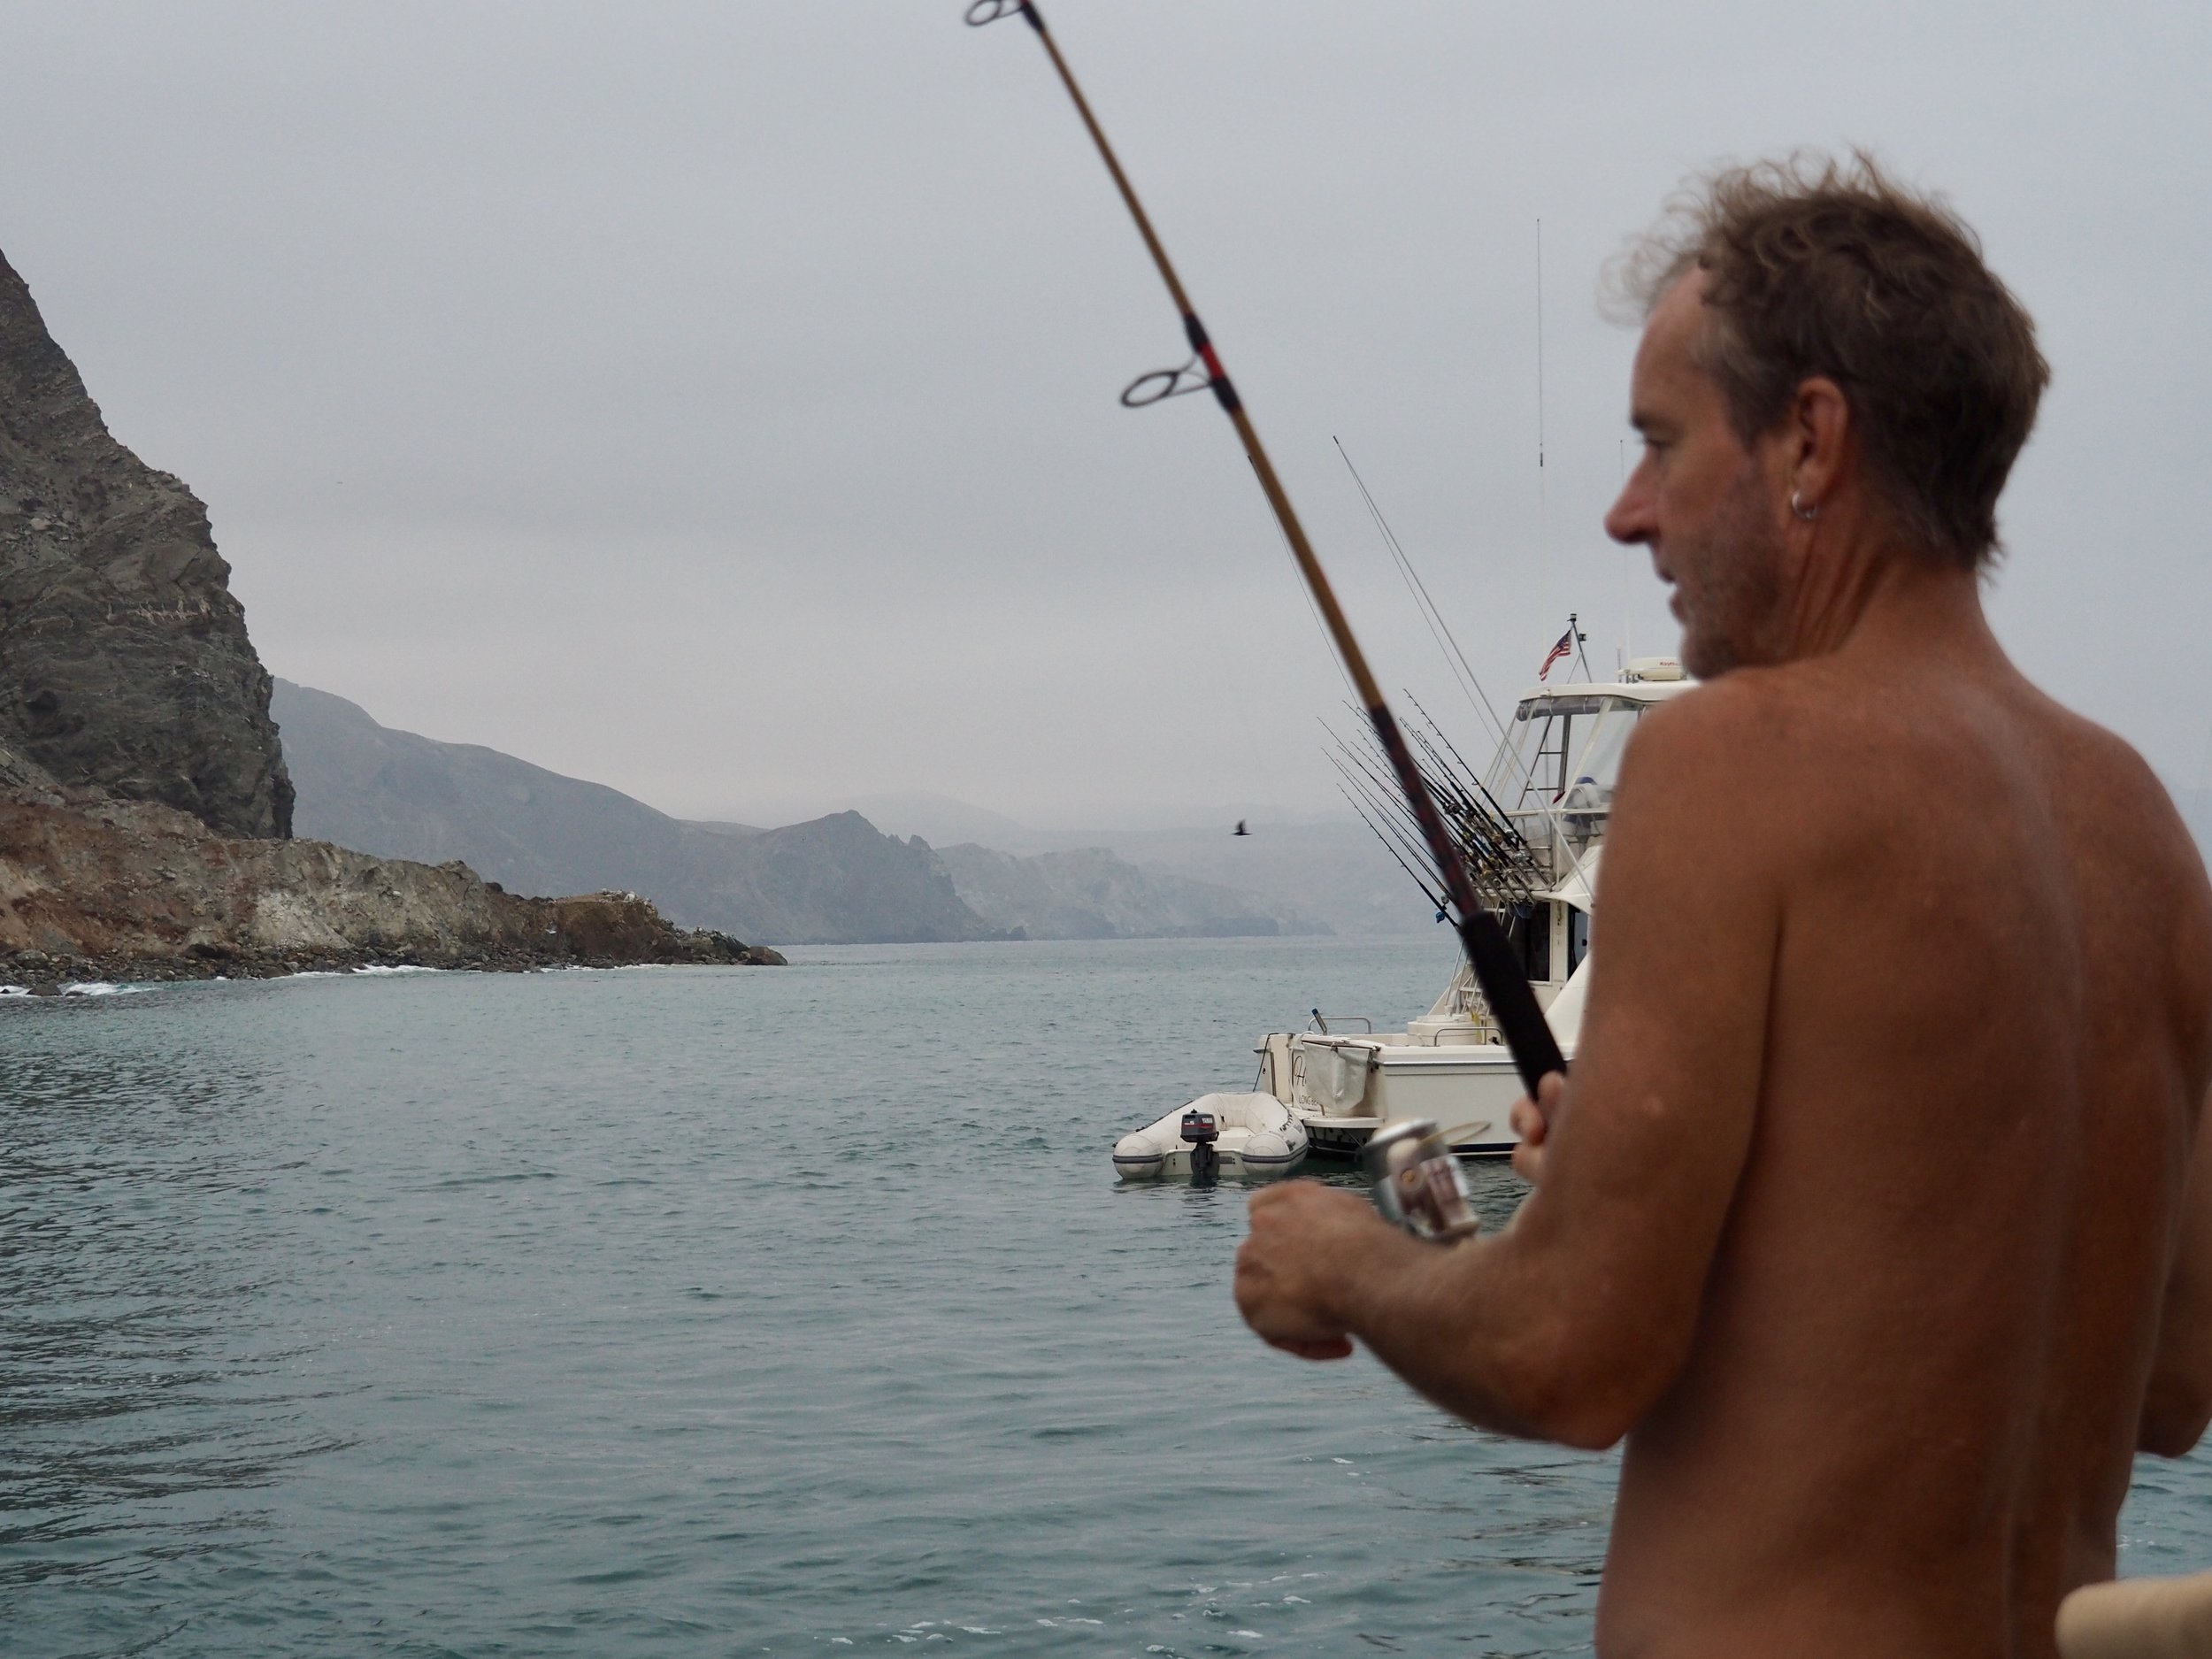 Woken by the call of the wild knocking on our hull, Colin wasted no time going after whatever was chasing the boiling mackerel around the boat